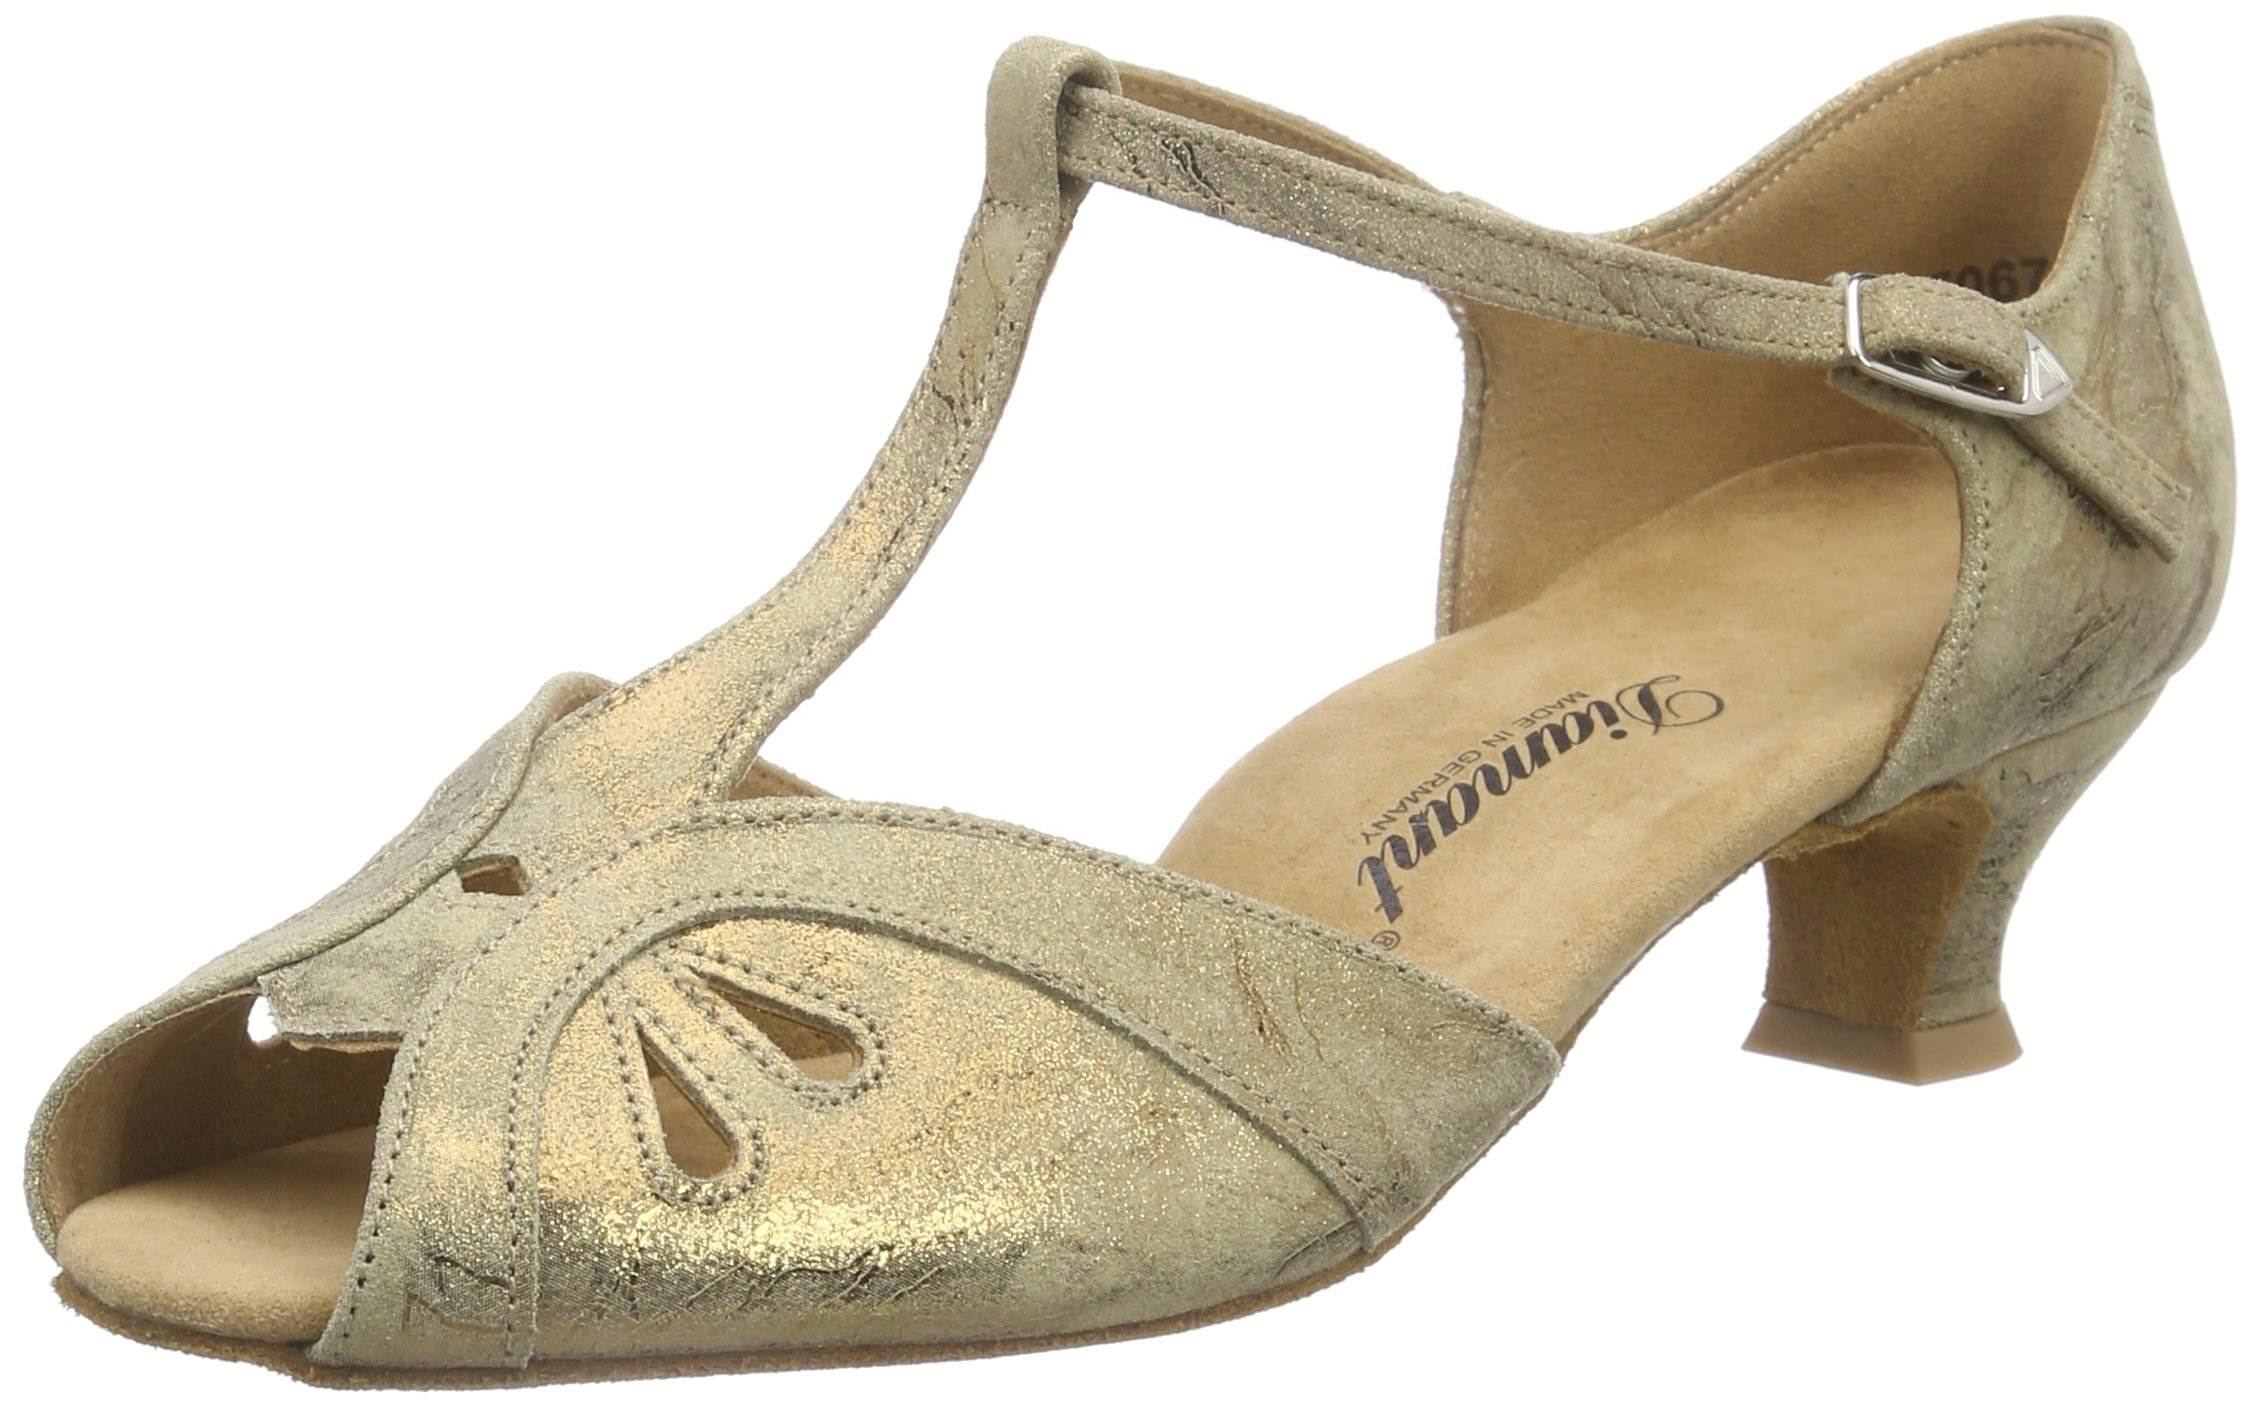 Damen 2 3 Tanzschuhe 019 311Chaussures De Salon Diamant FemmeMarronBraunbronze Magic42 011 Danse Eu 80PknwONX